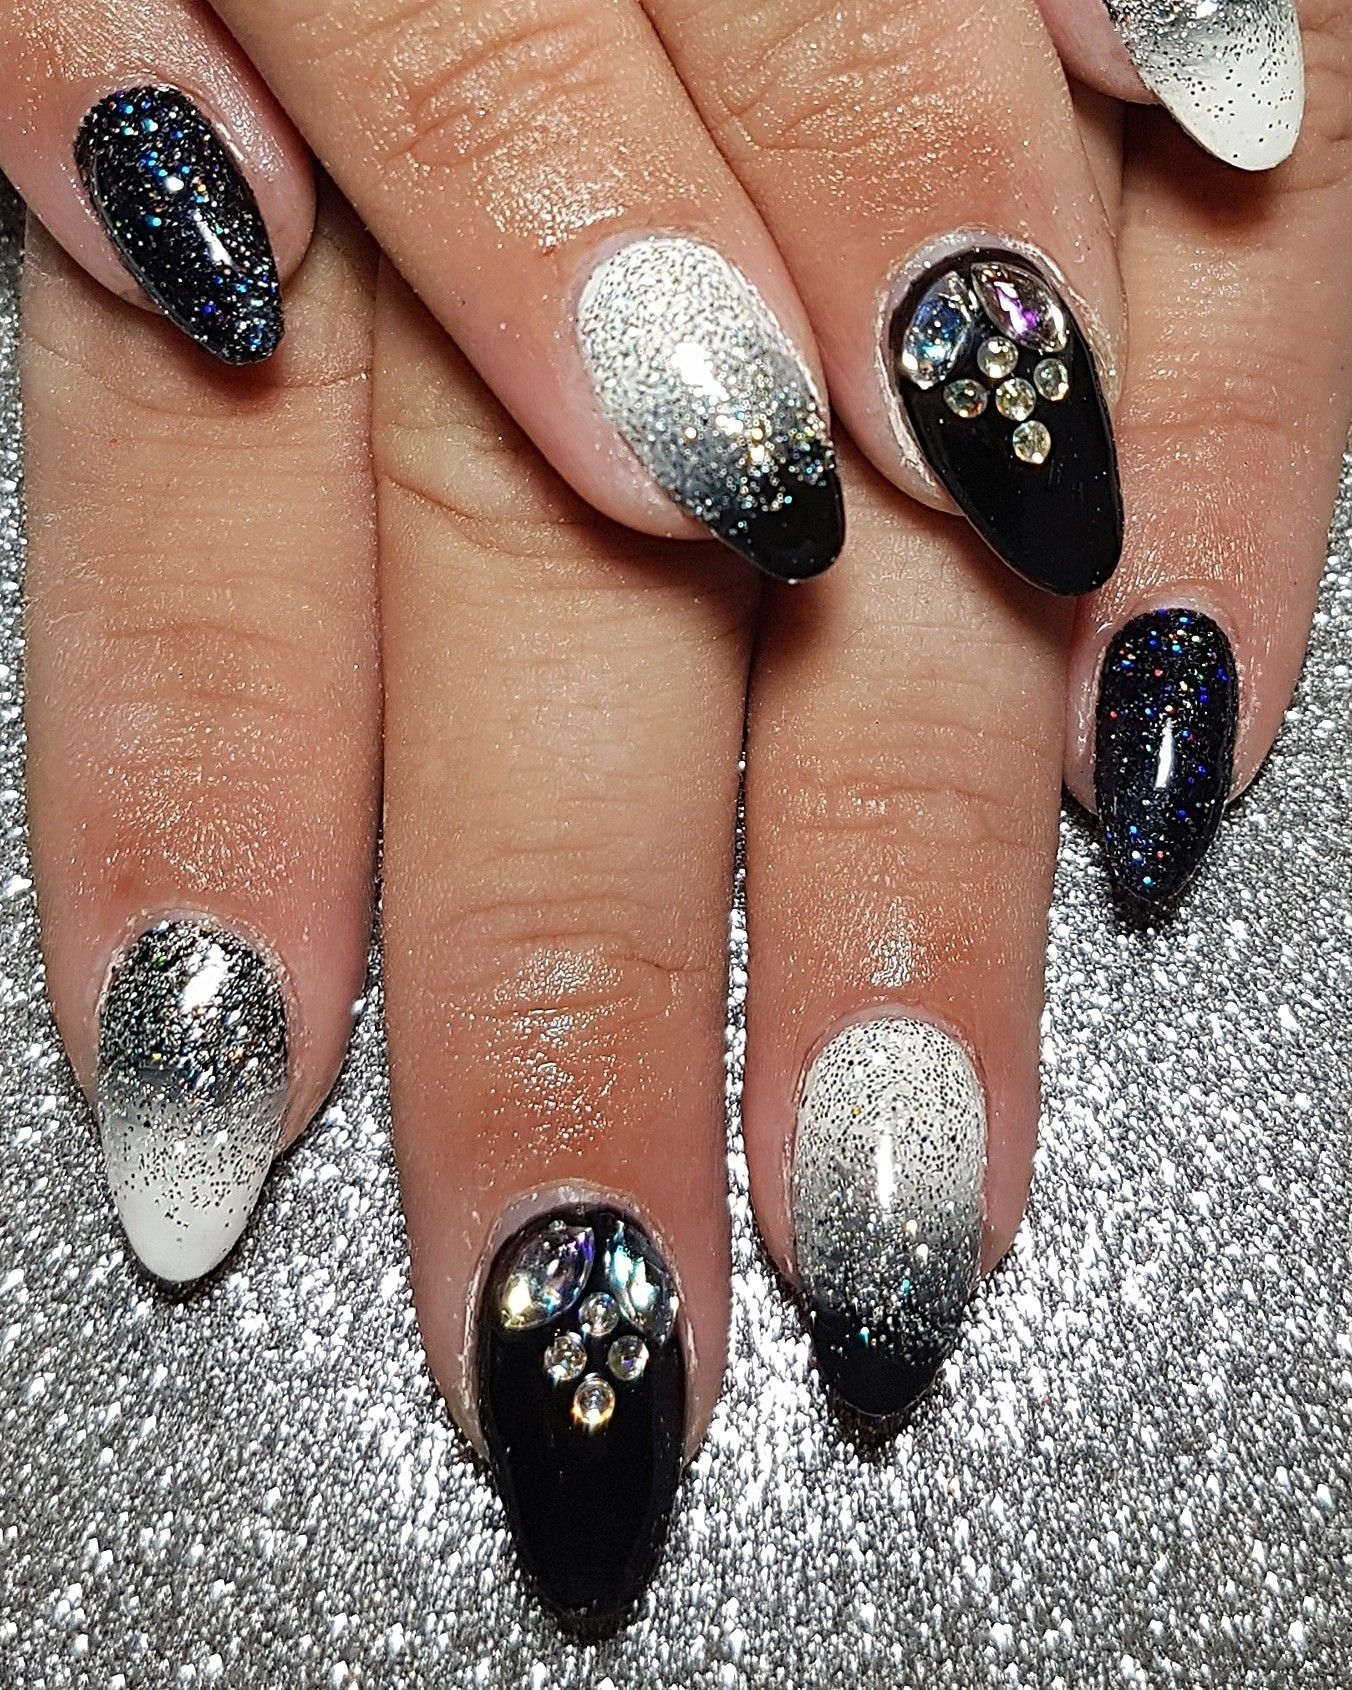 Black And White Ombre With Glitter And Gems On Gel Sculpted Nails Sculpted Nails Nails Fragrance Free Products